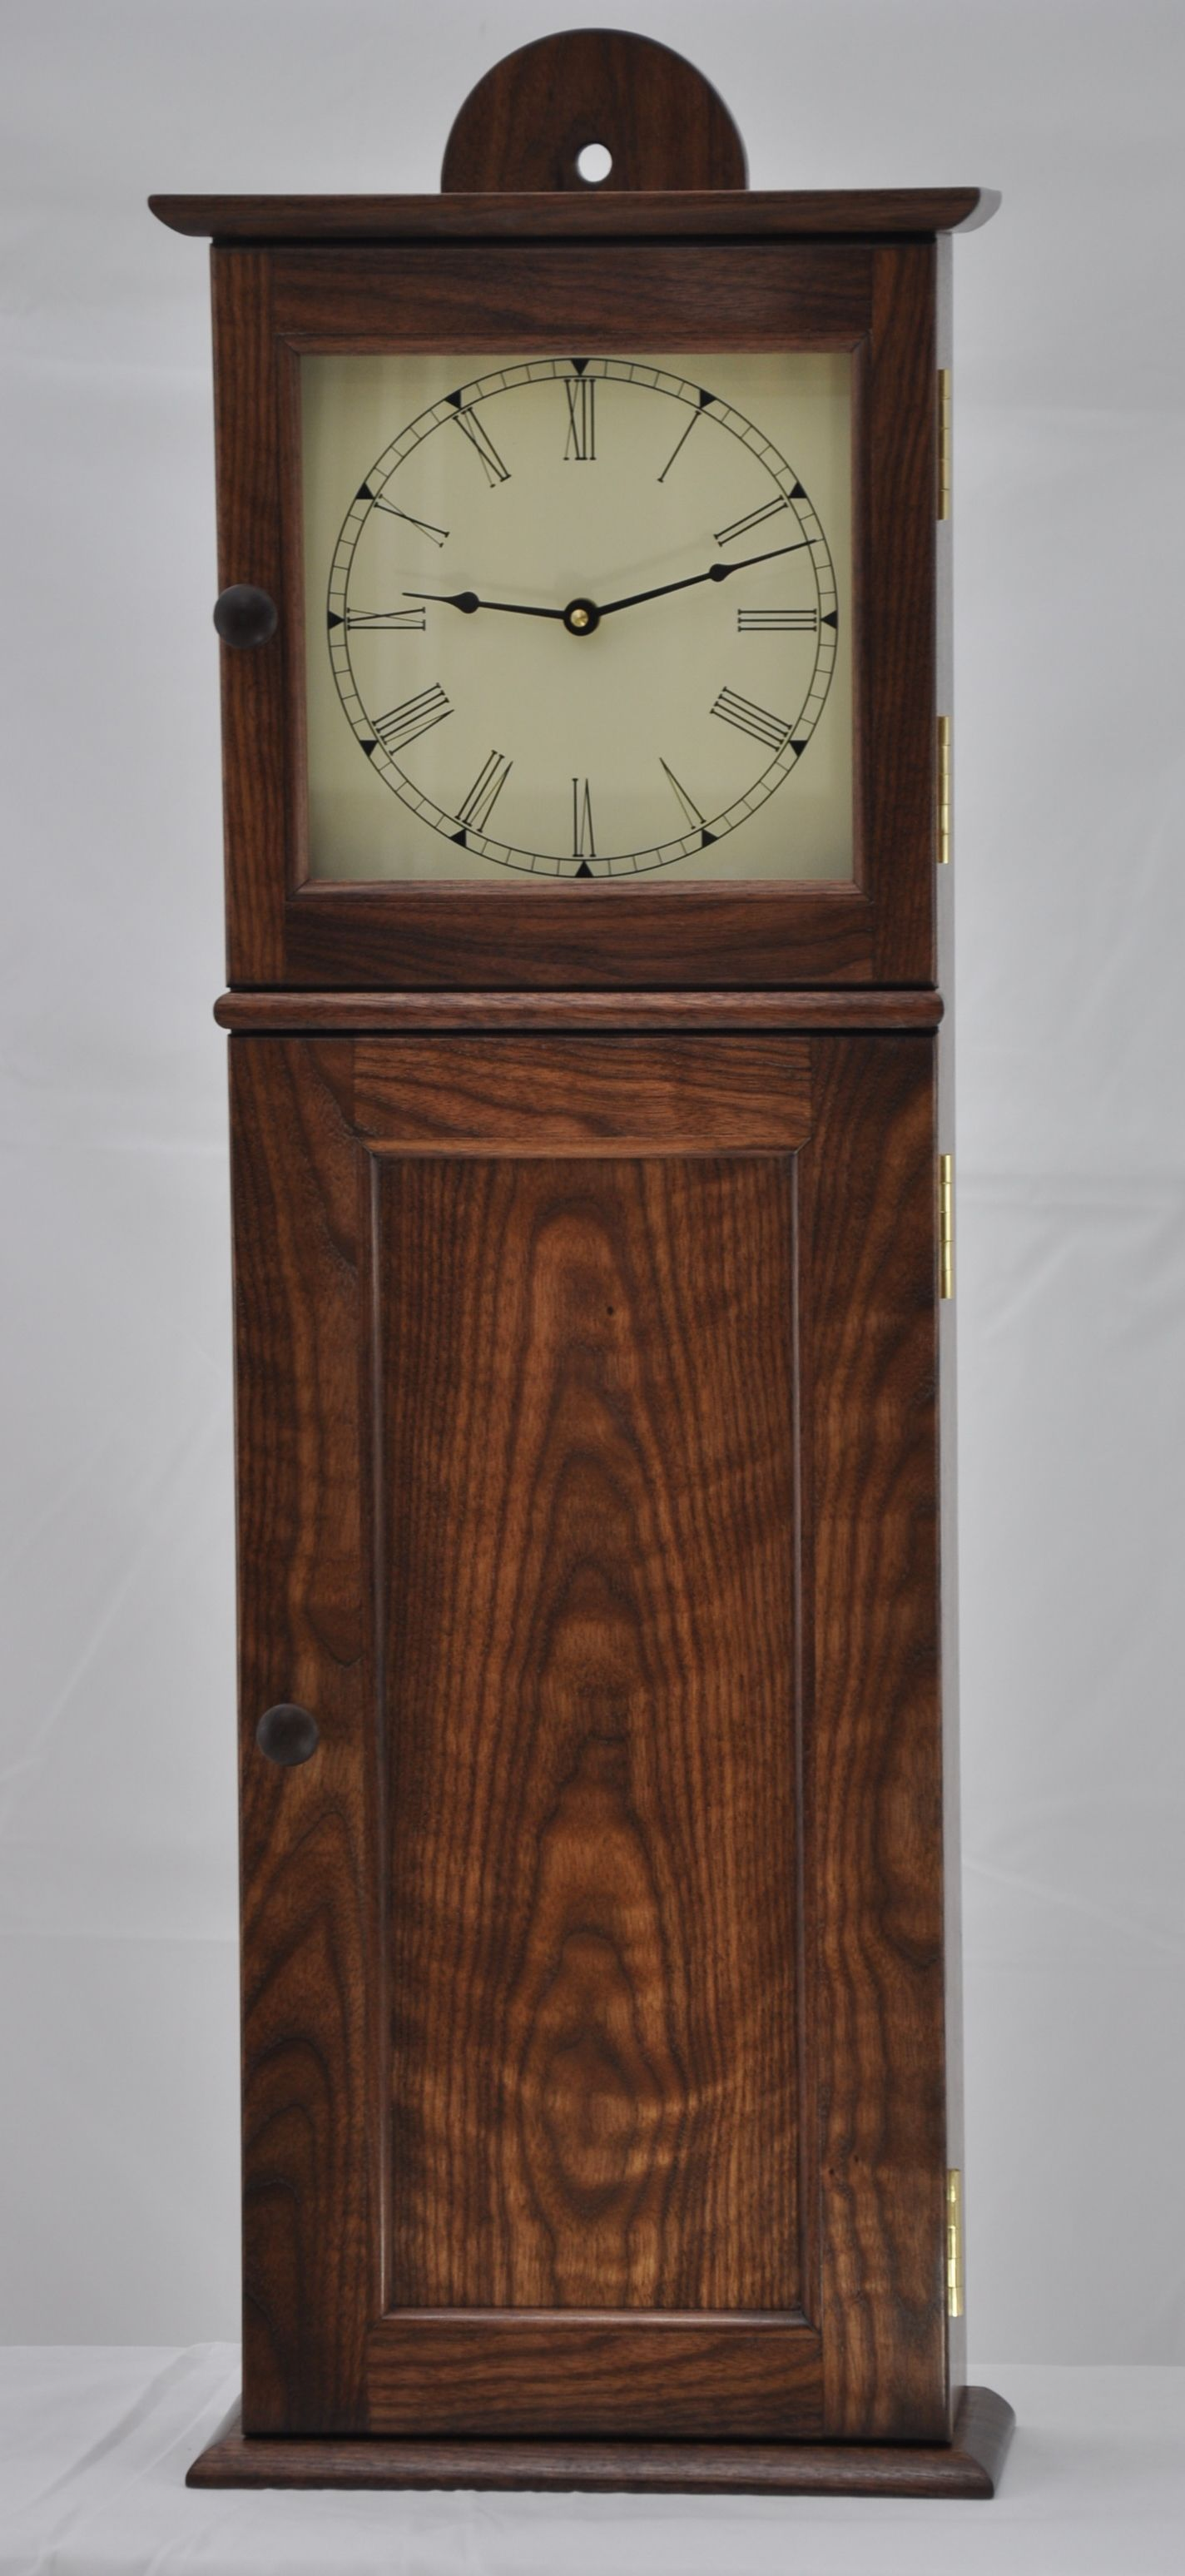 Buy a handmade shaker wall clock in figured walnut made to order buy a handmade shaker wall clock in figured walnut made to order from winding river workshop custommade amipublicfo Image collections